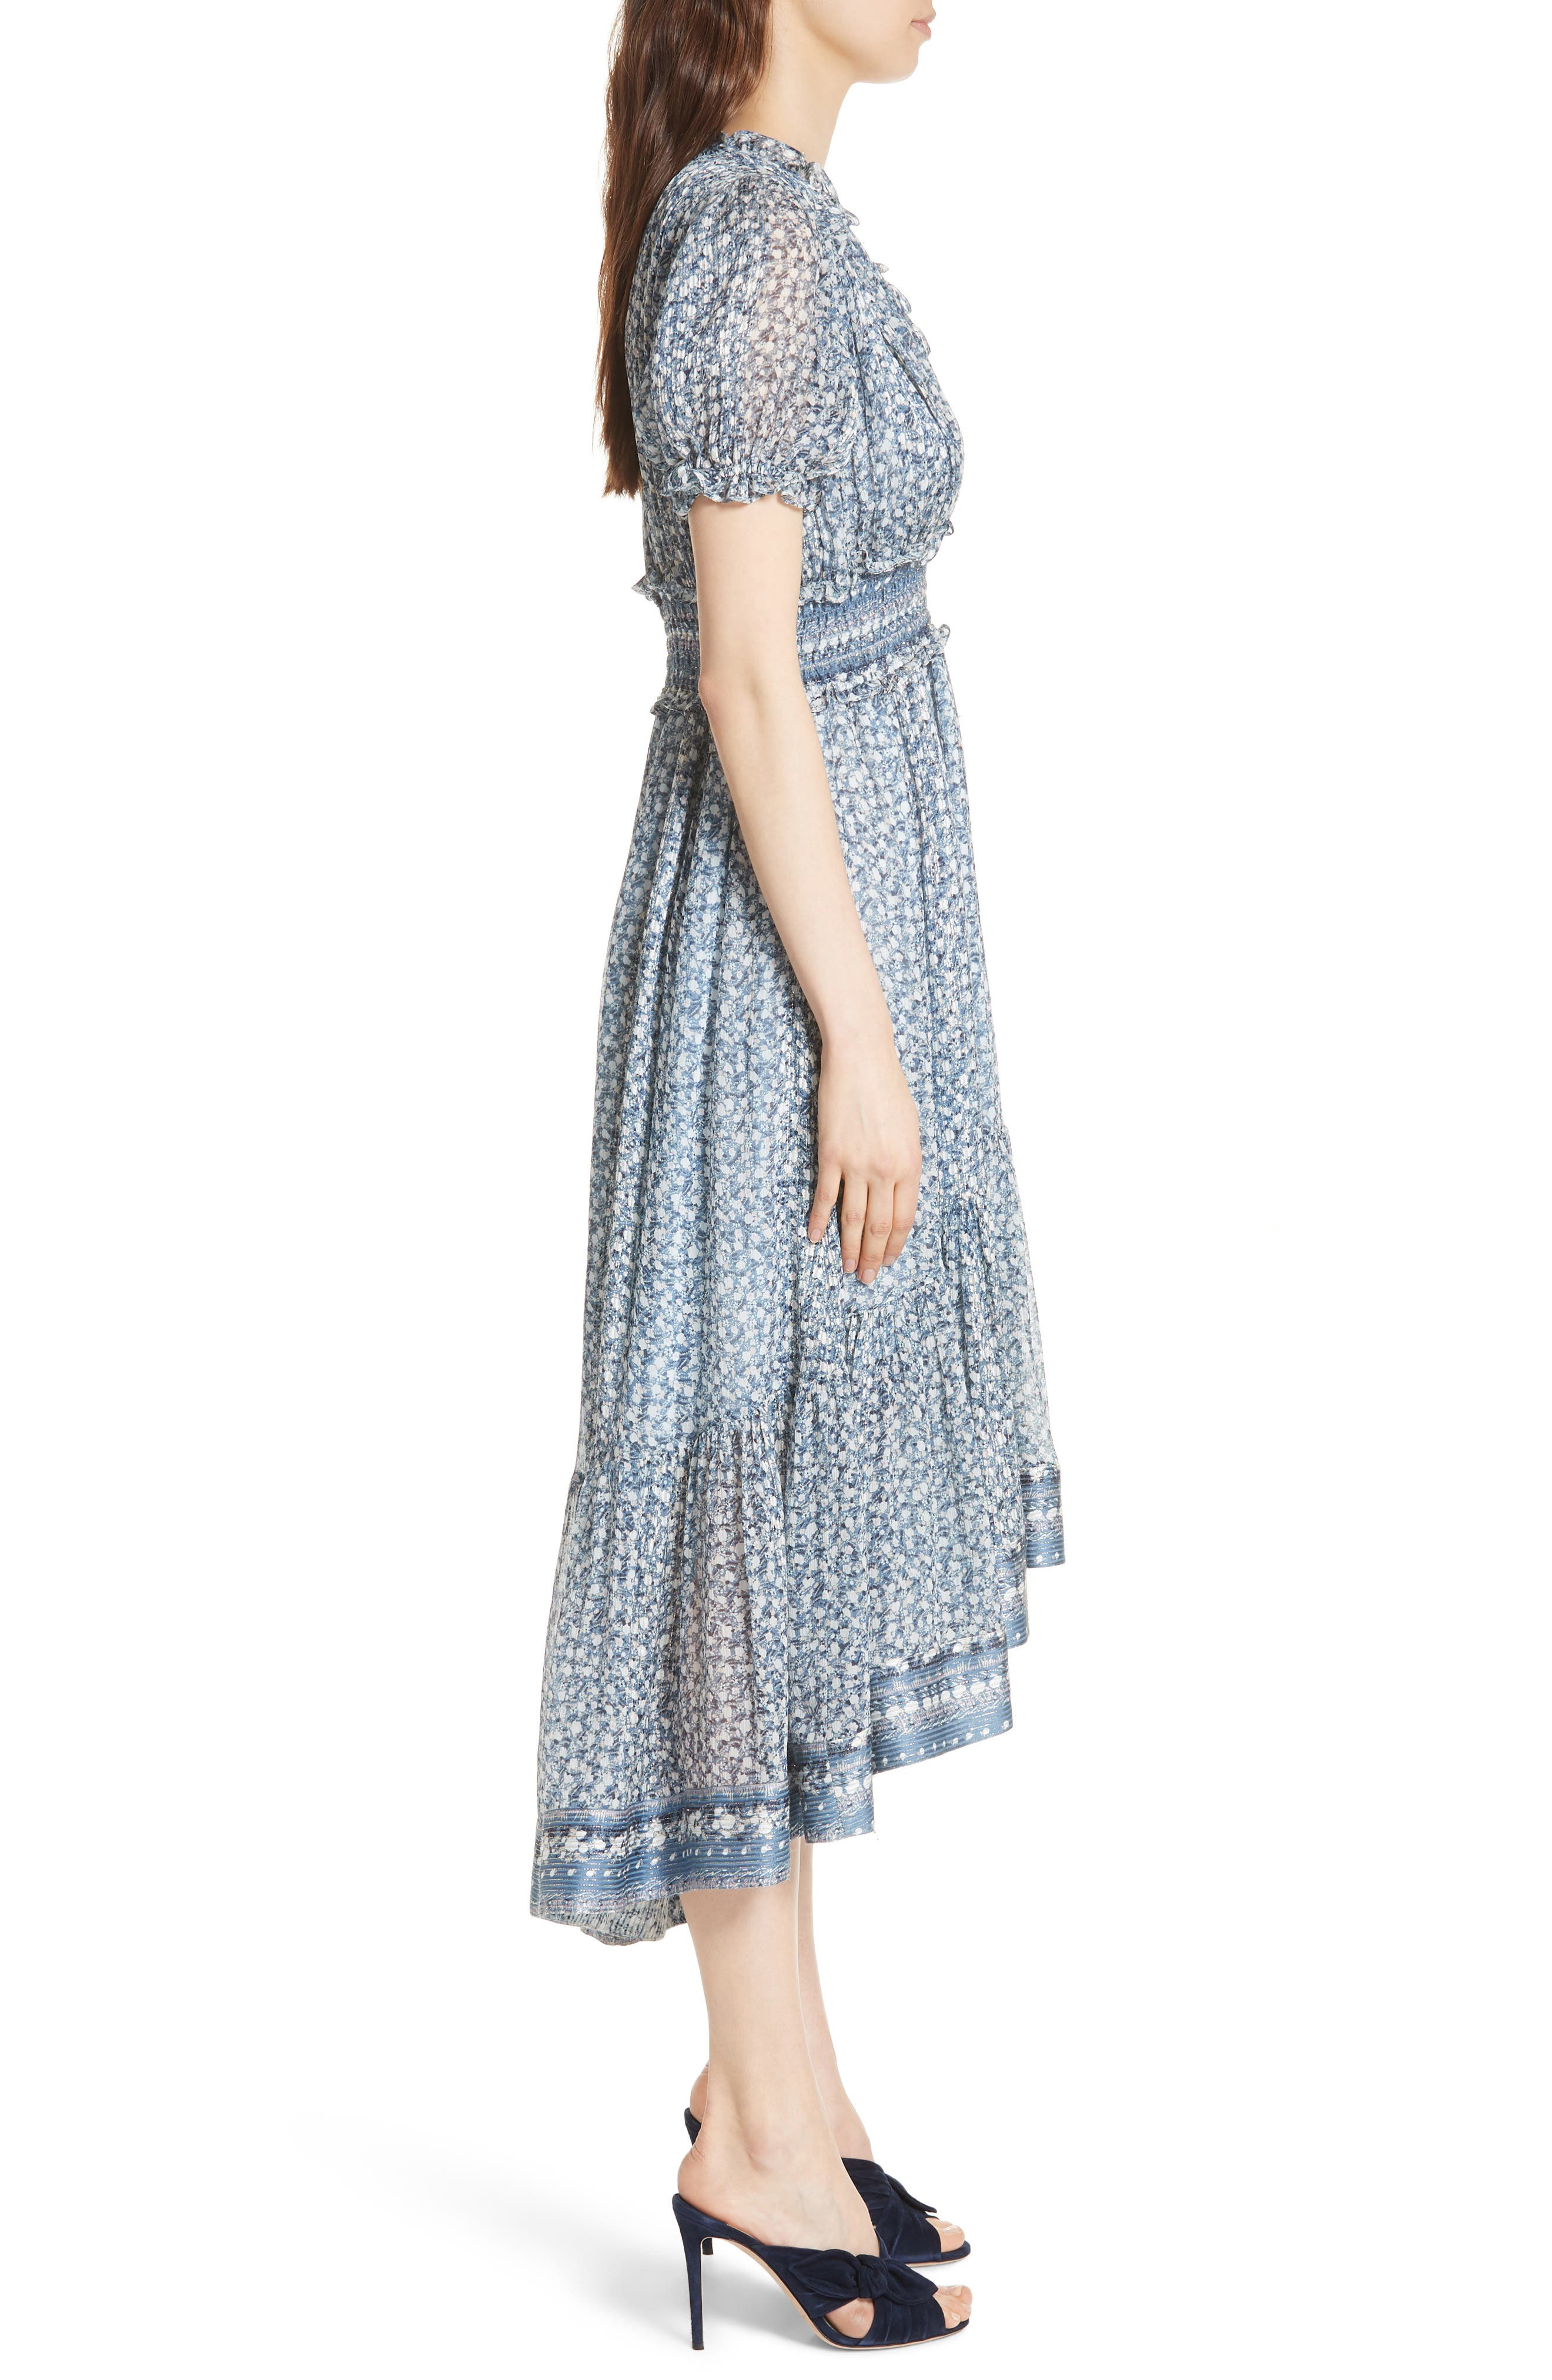 Evania Floral Silk Blend Dress,                             Alternate thumbnail 3, color,                             400